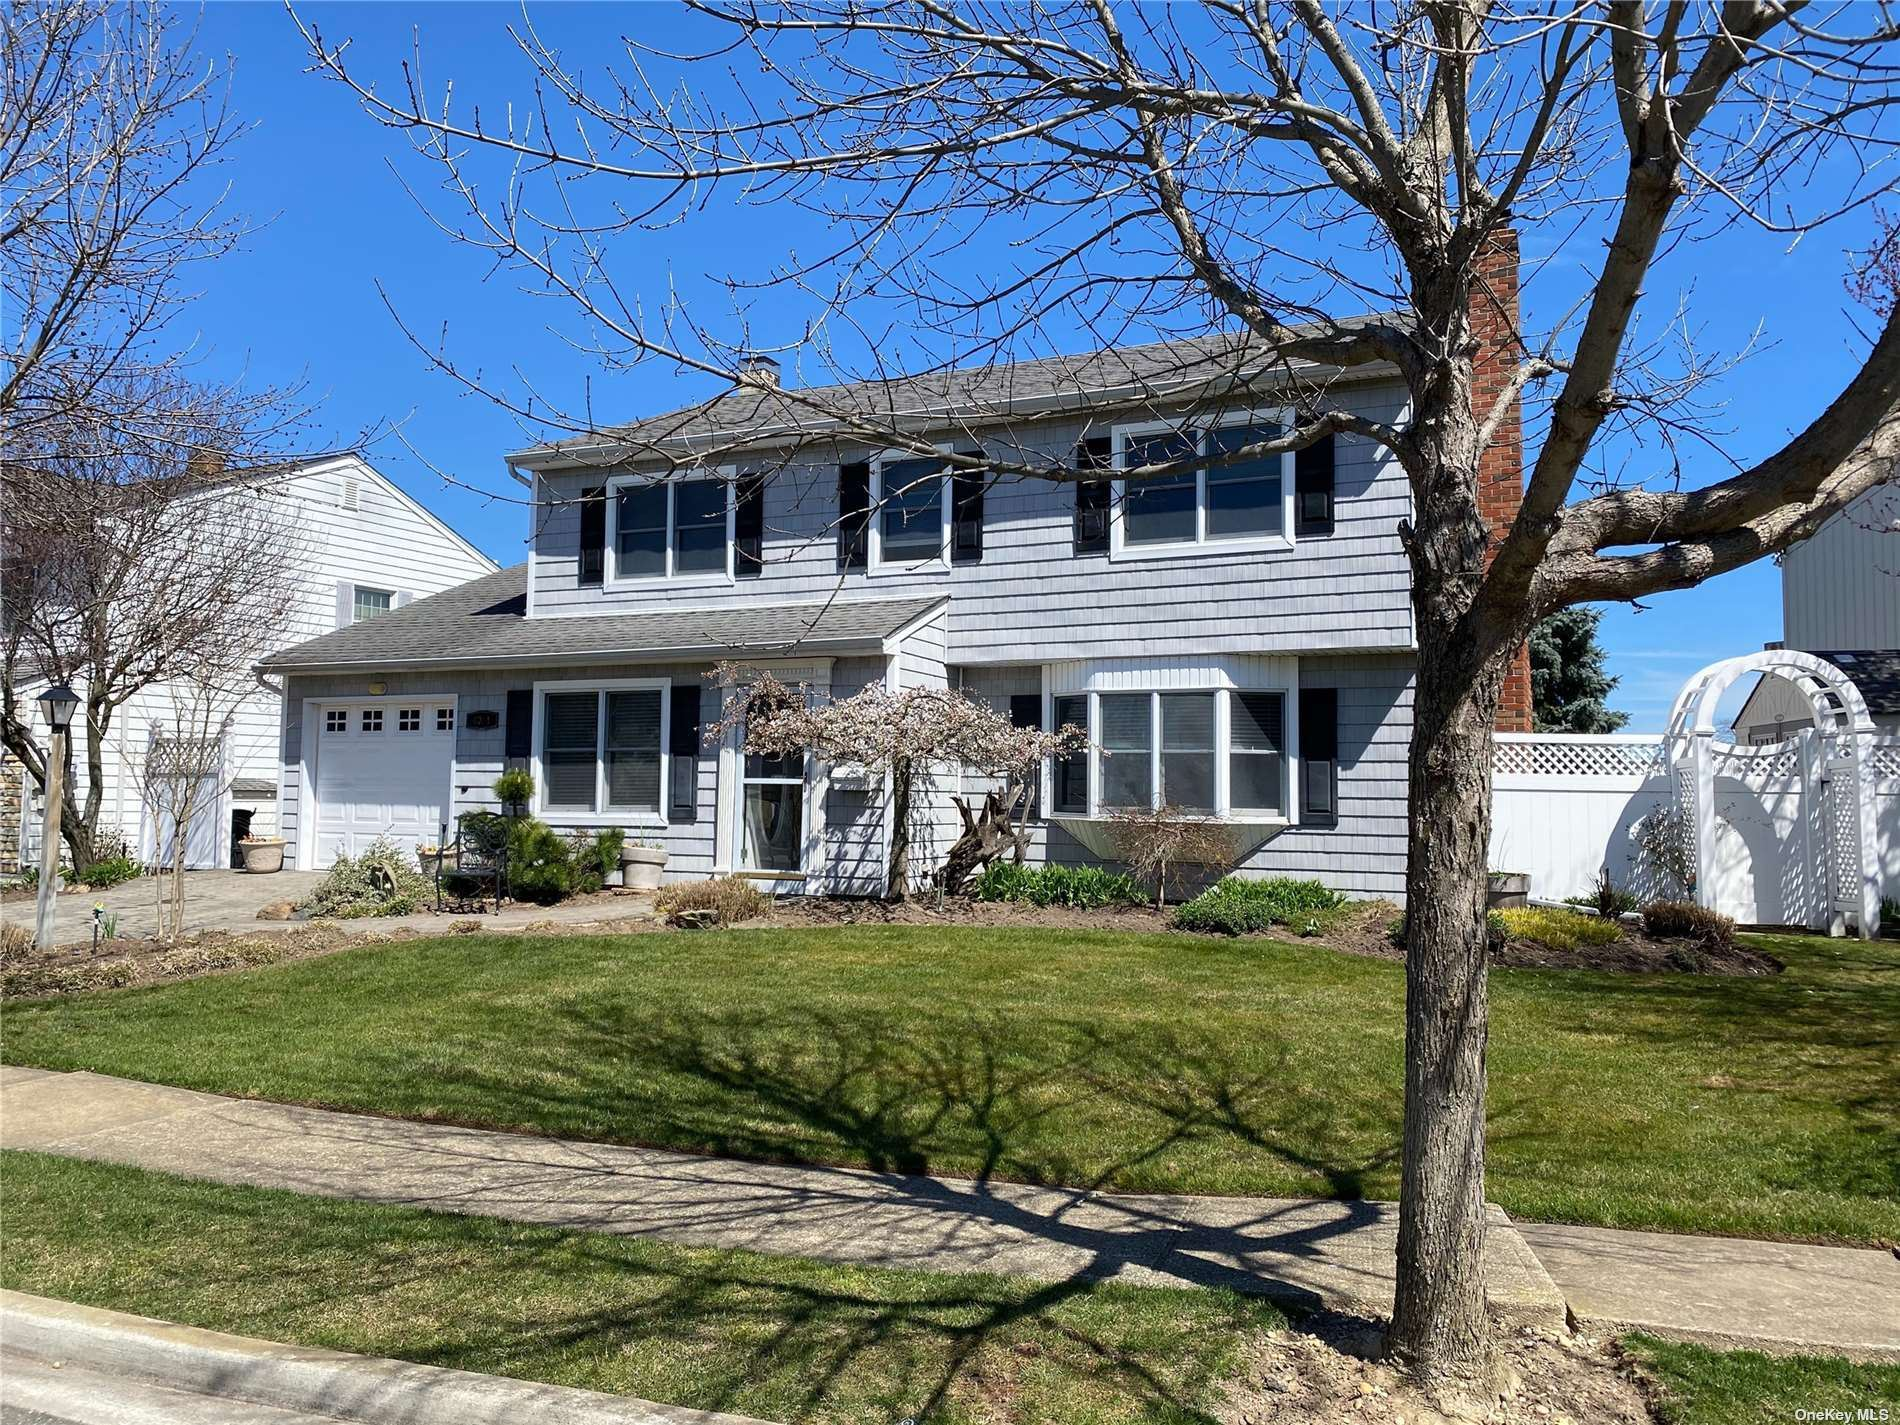 4031 Darby Lane, Seaford, NY 11783 - MLS#: 3301383